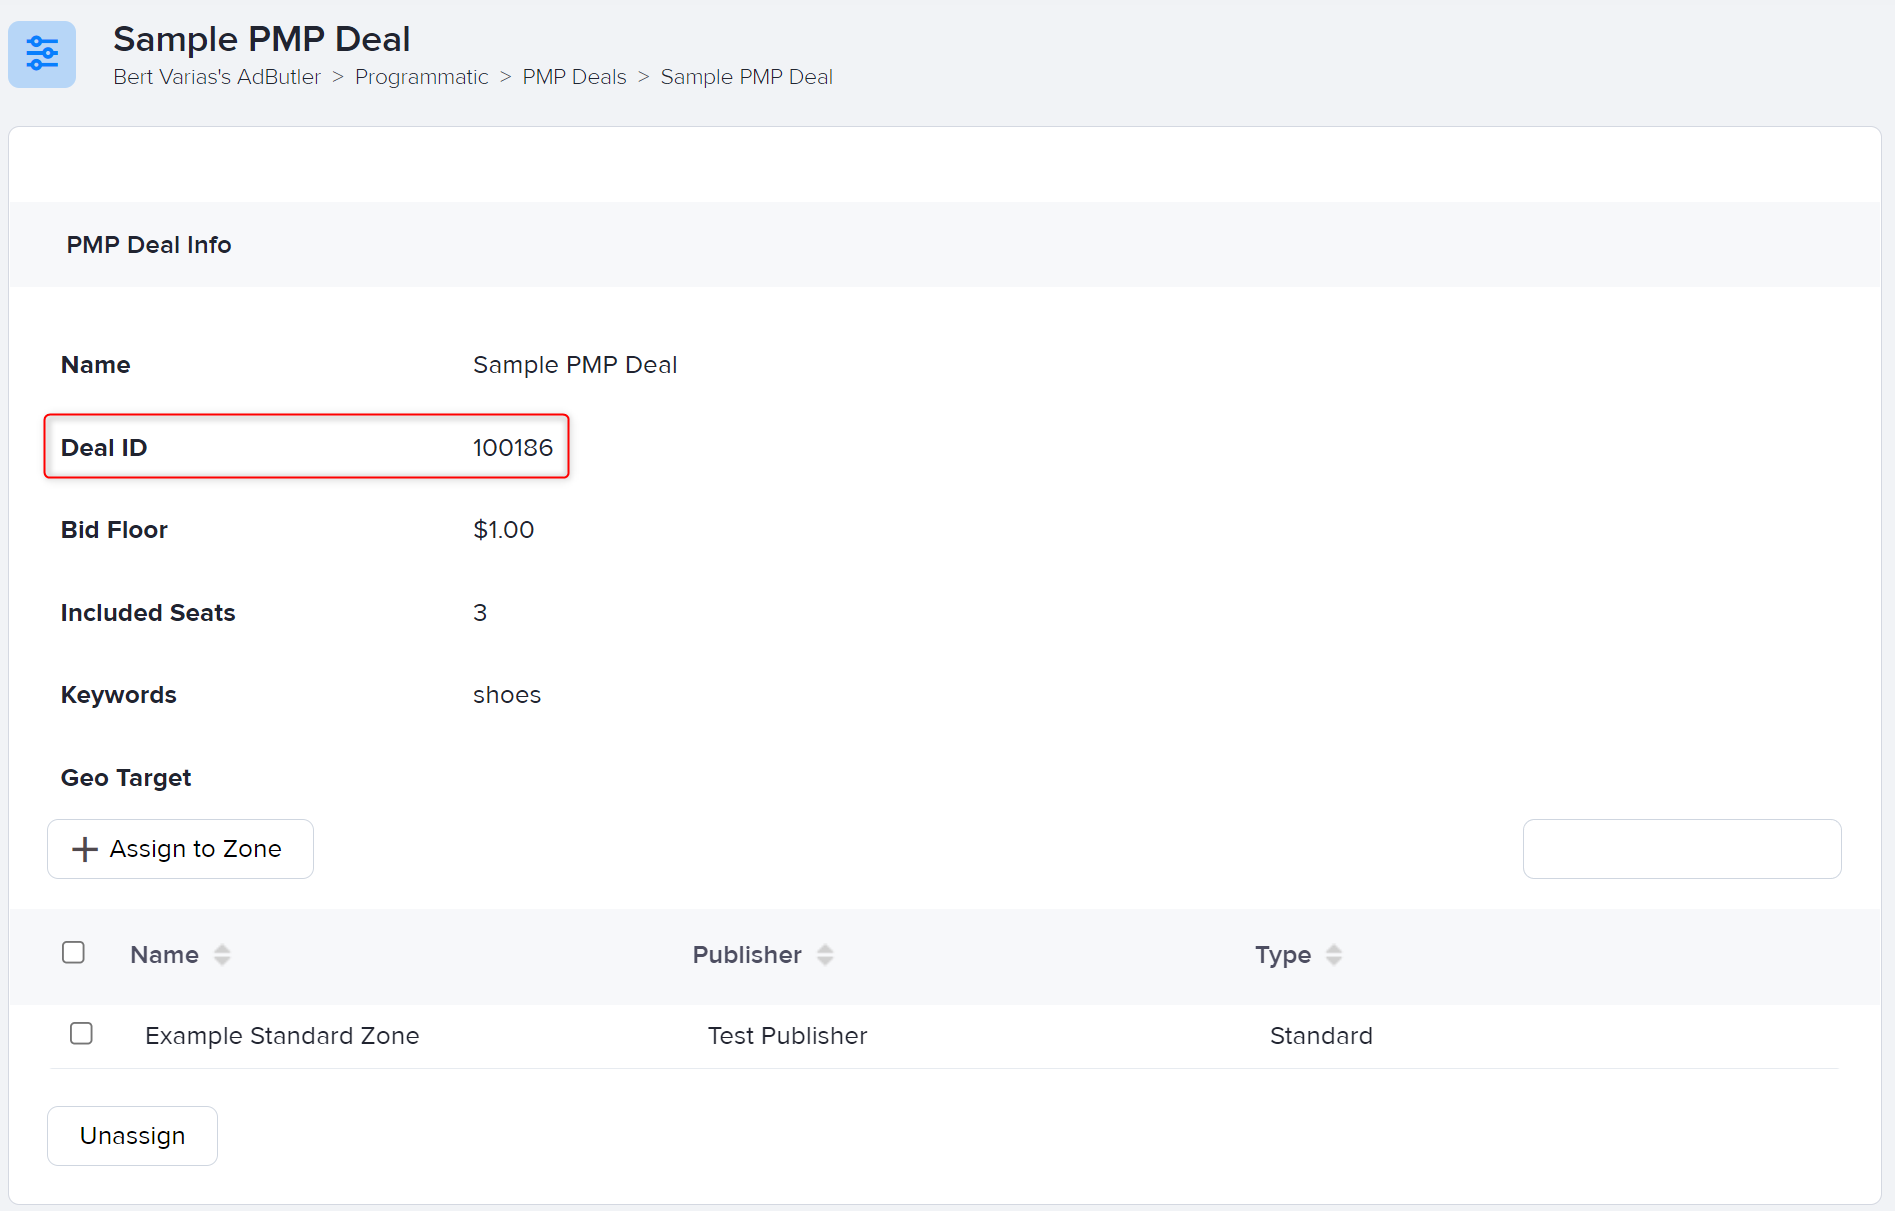 The Deal ID in the PMP Deal settings